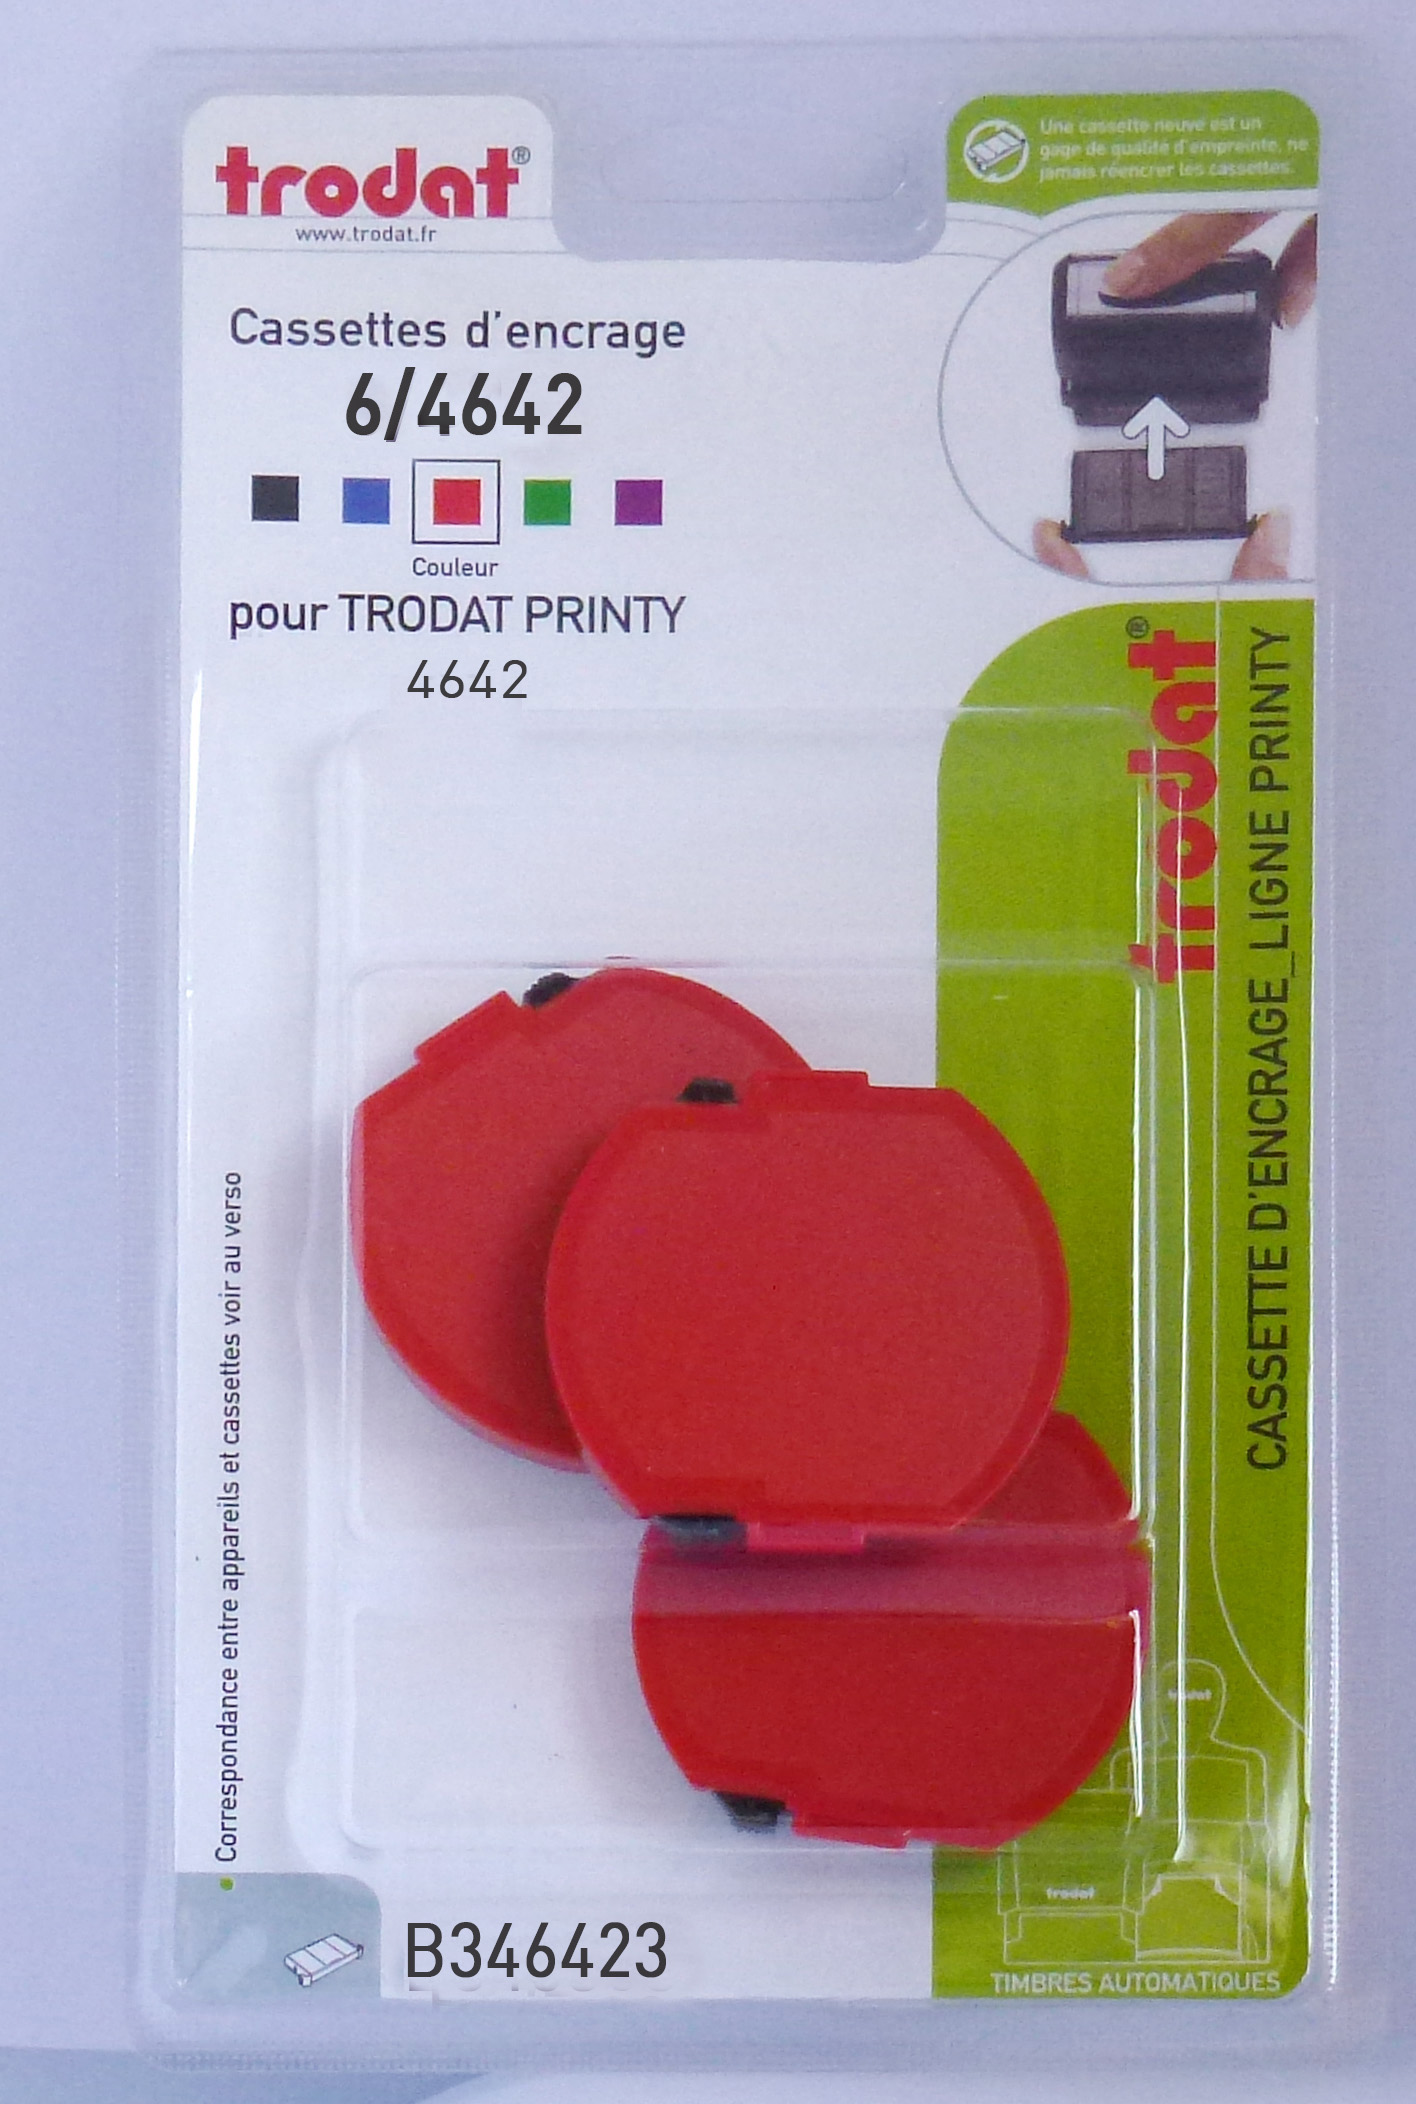 Trodat - 3 Encriers 6/4642 recharges pour tampon Printy 4642 - rouge